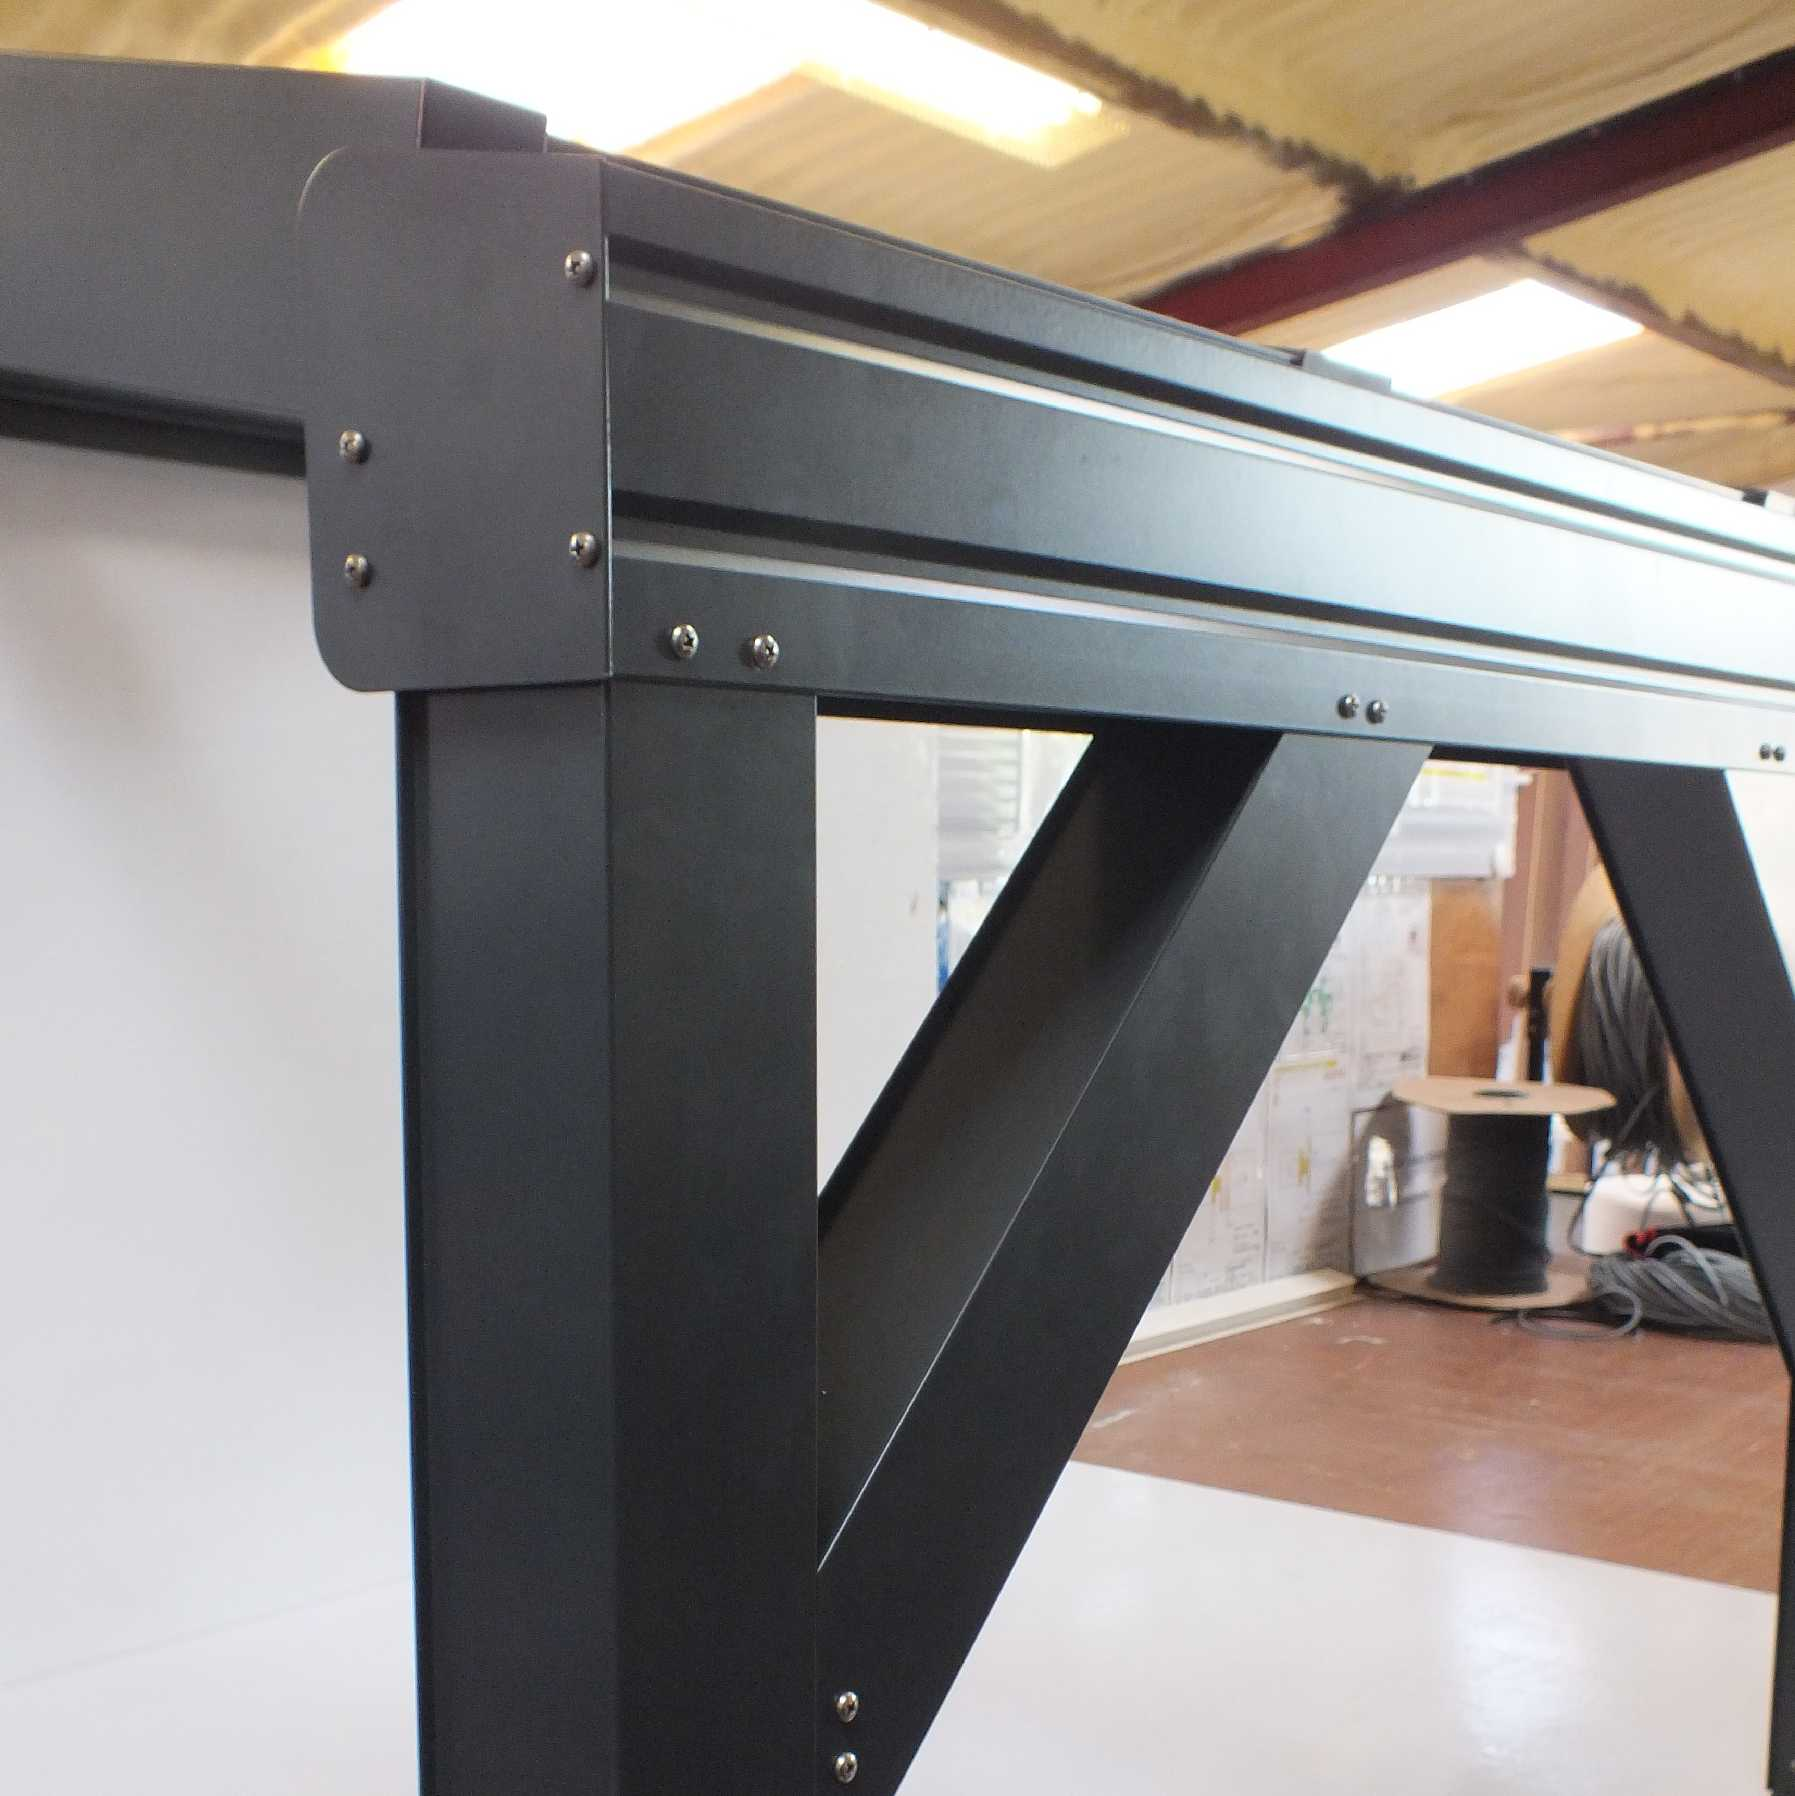 Omega Smart Lean-To Canopy, Anthracite Grey, UNGLAZED for 6mm Glazing - 2.1m (W) x 2.0m (P), (2) Supporting Posts from Omega Build